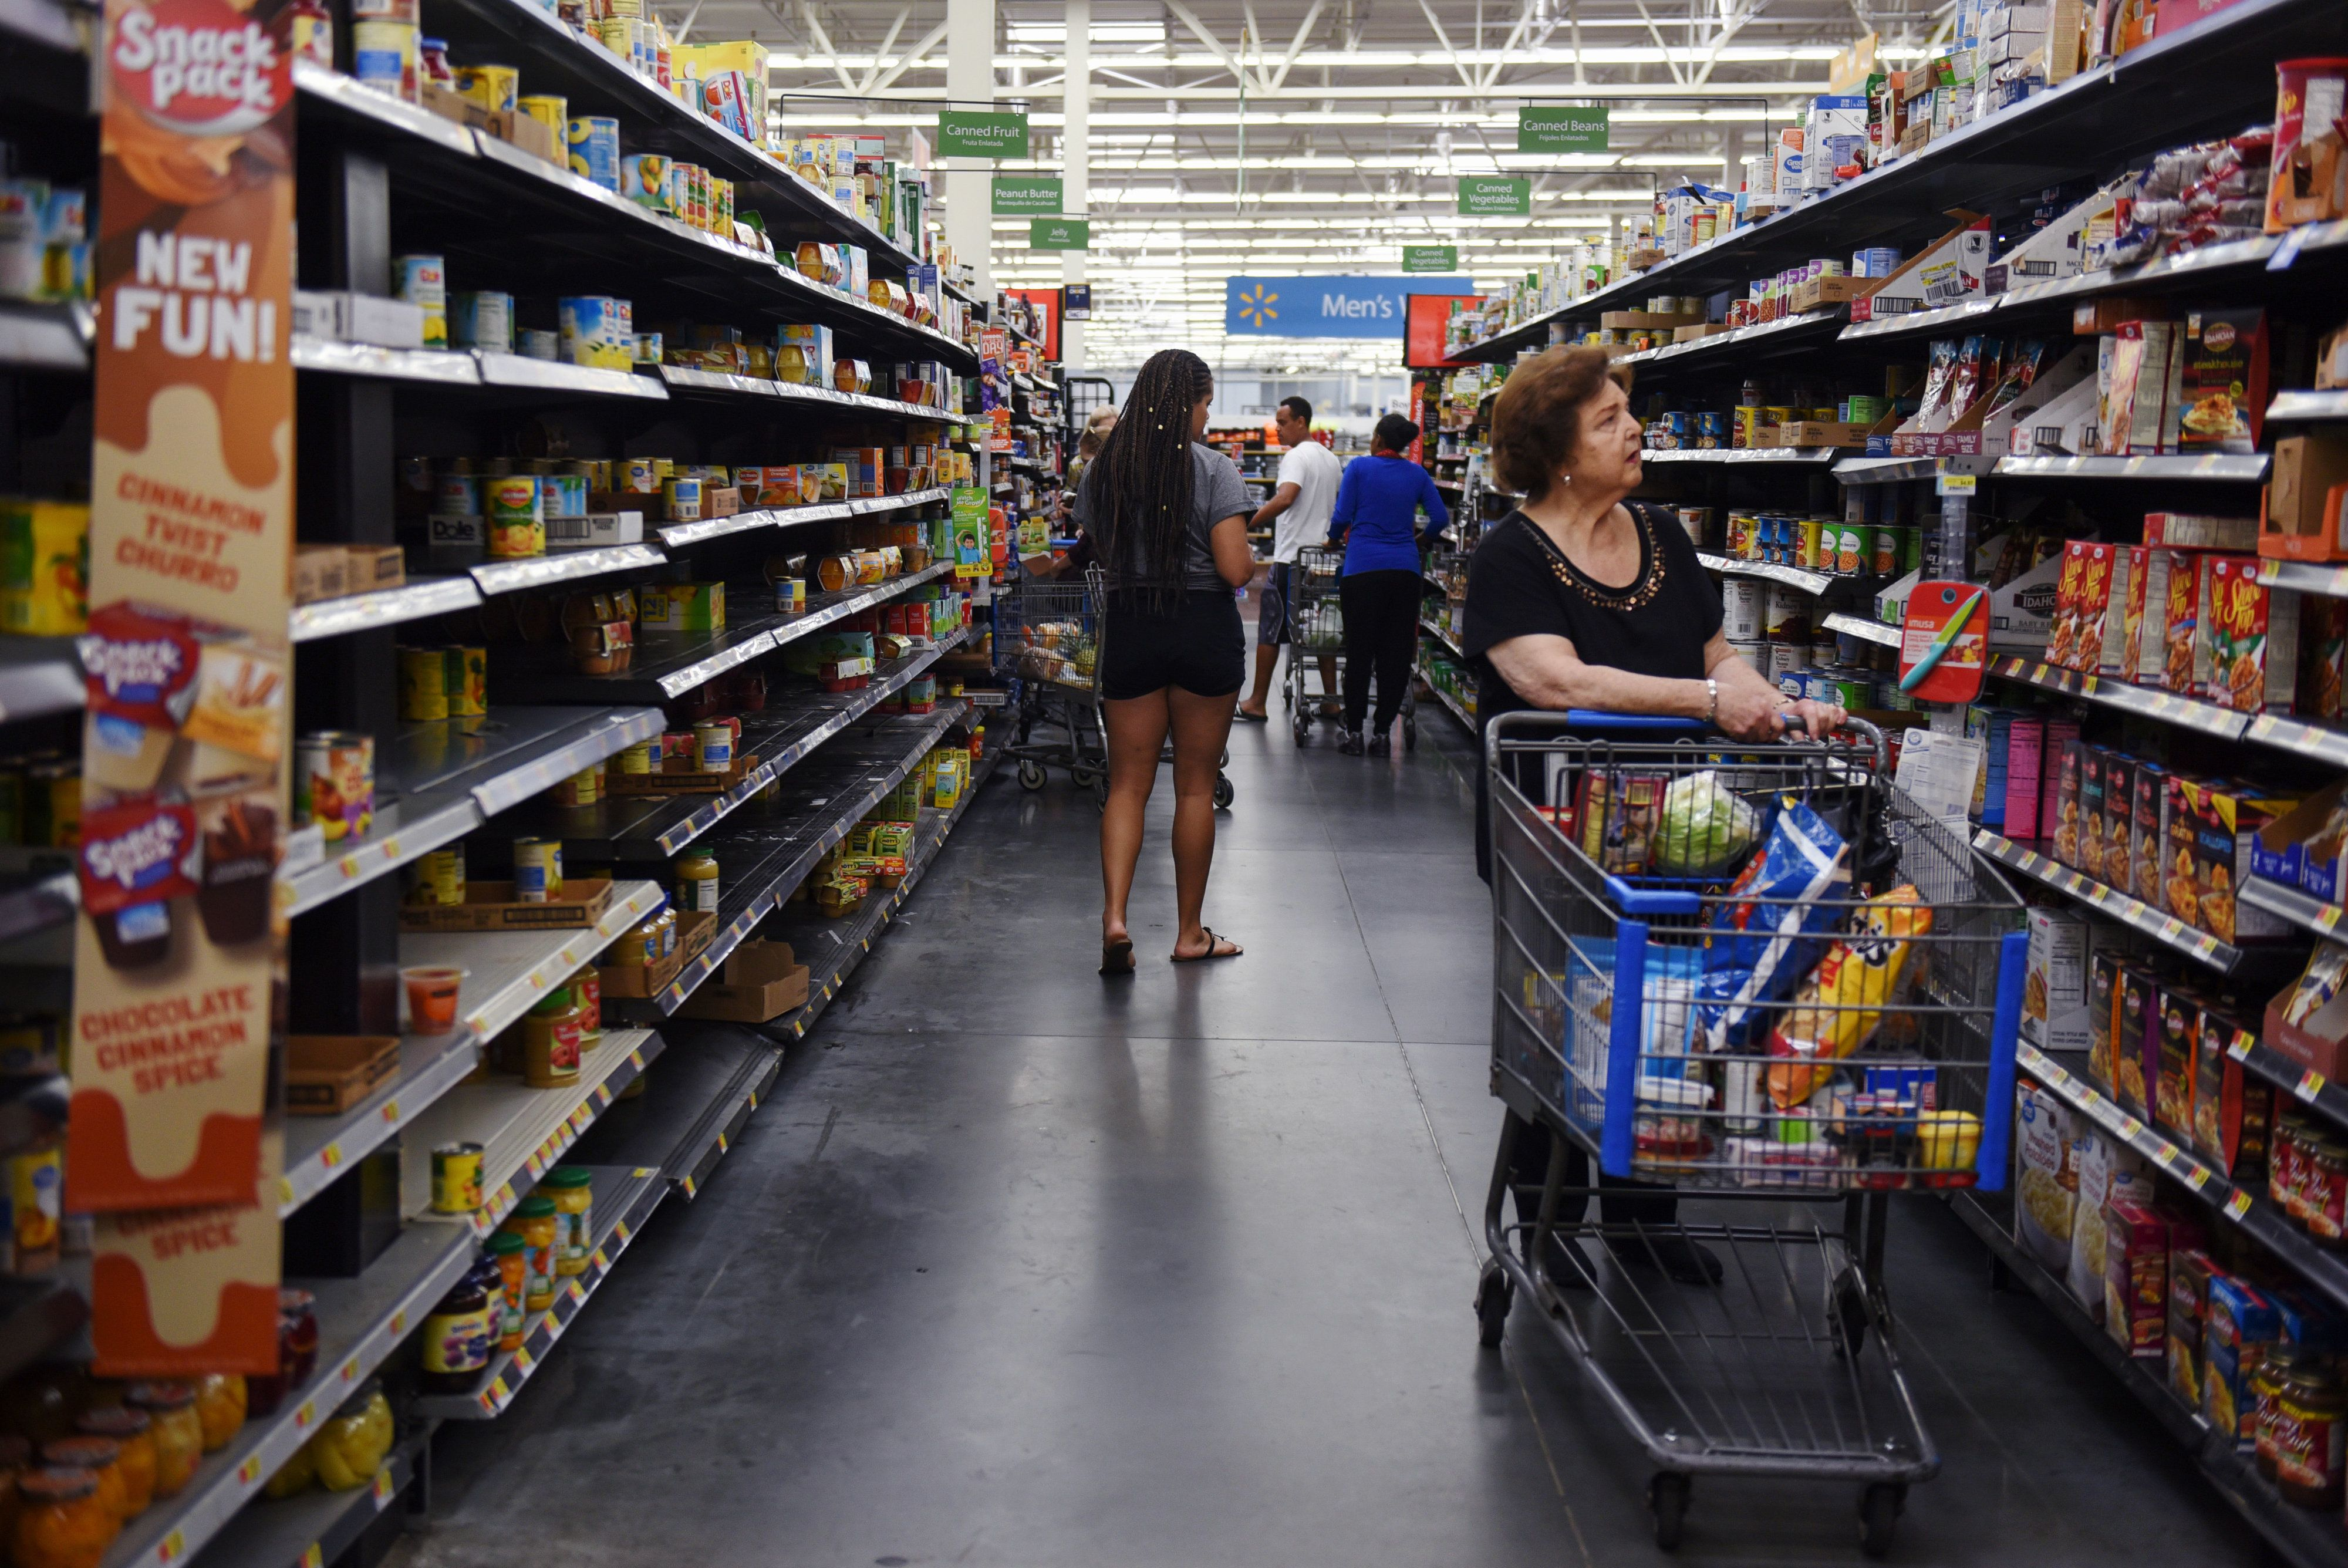 Shoppers walk through a canned foods aisle in a Walmart Inc. store ahead of Hurricane Florence in Charlotte, North Carolina, U.S., on Thursday, Sept. 13, 2018. Hurricane Florence's wrath hit the North Carolina coast, but the full effects of the storm, still centered 100 miles from shore, are yet to come. Photographer: Callaghan O'Hare/Bloomberg via Getty Images